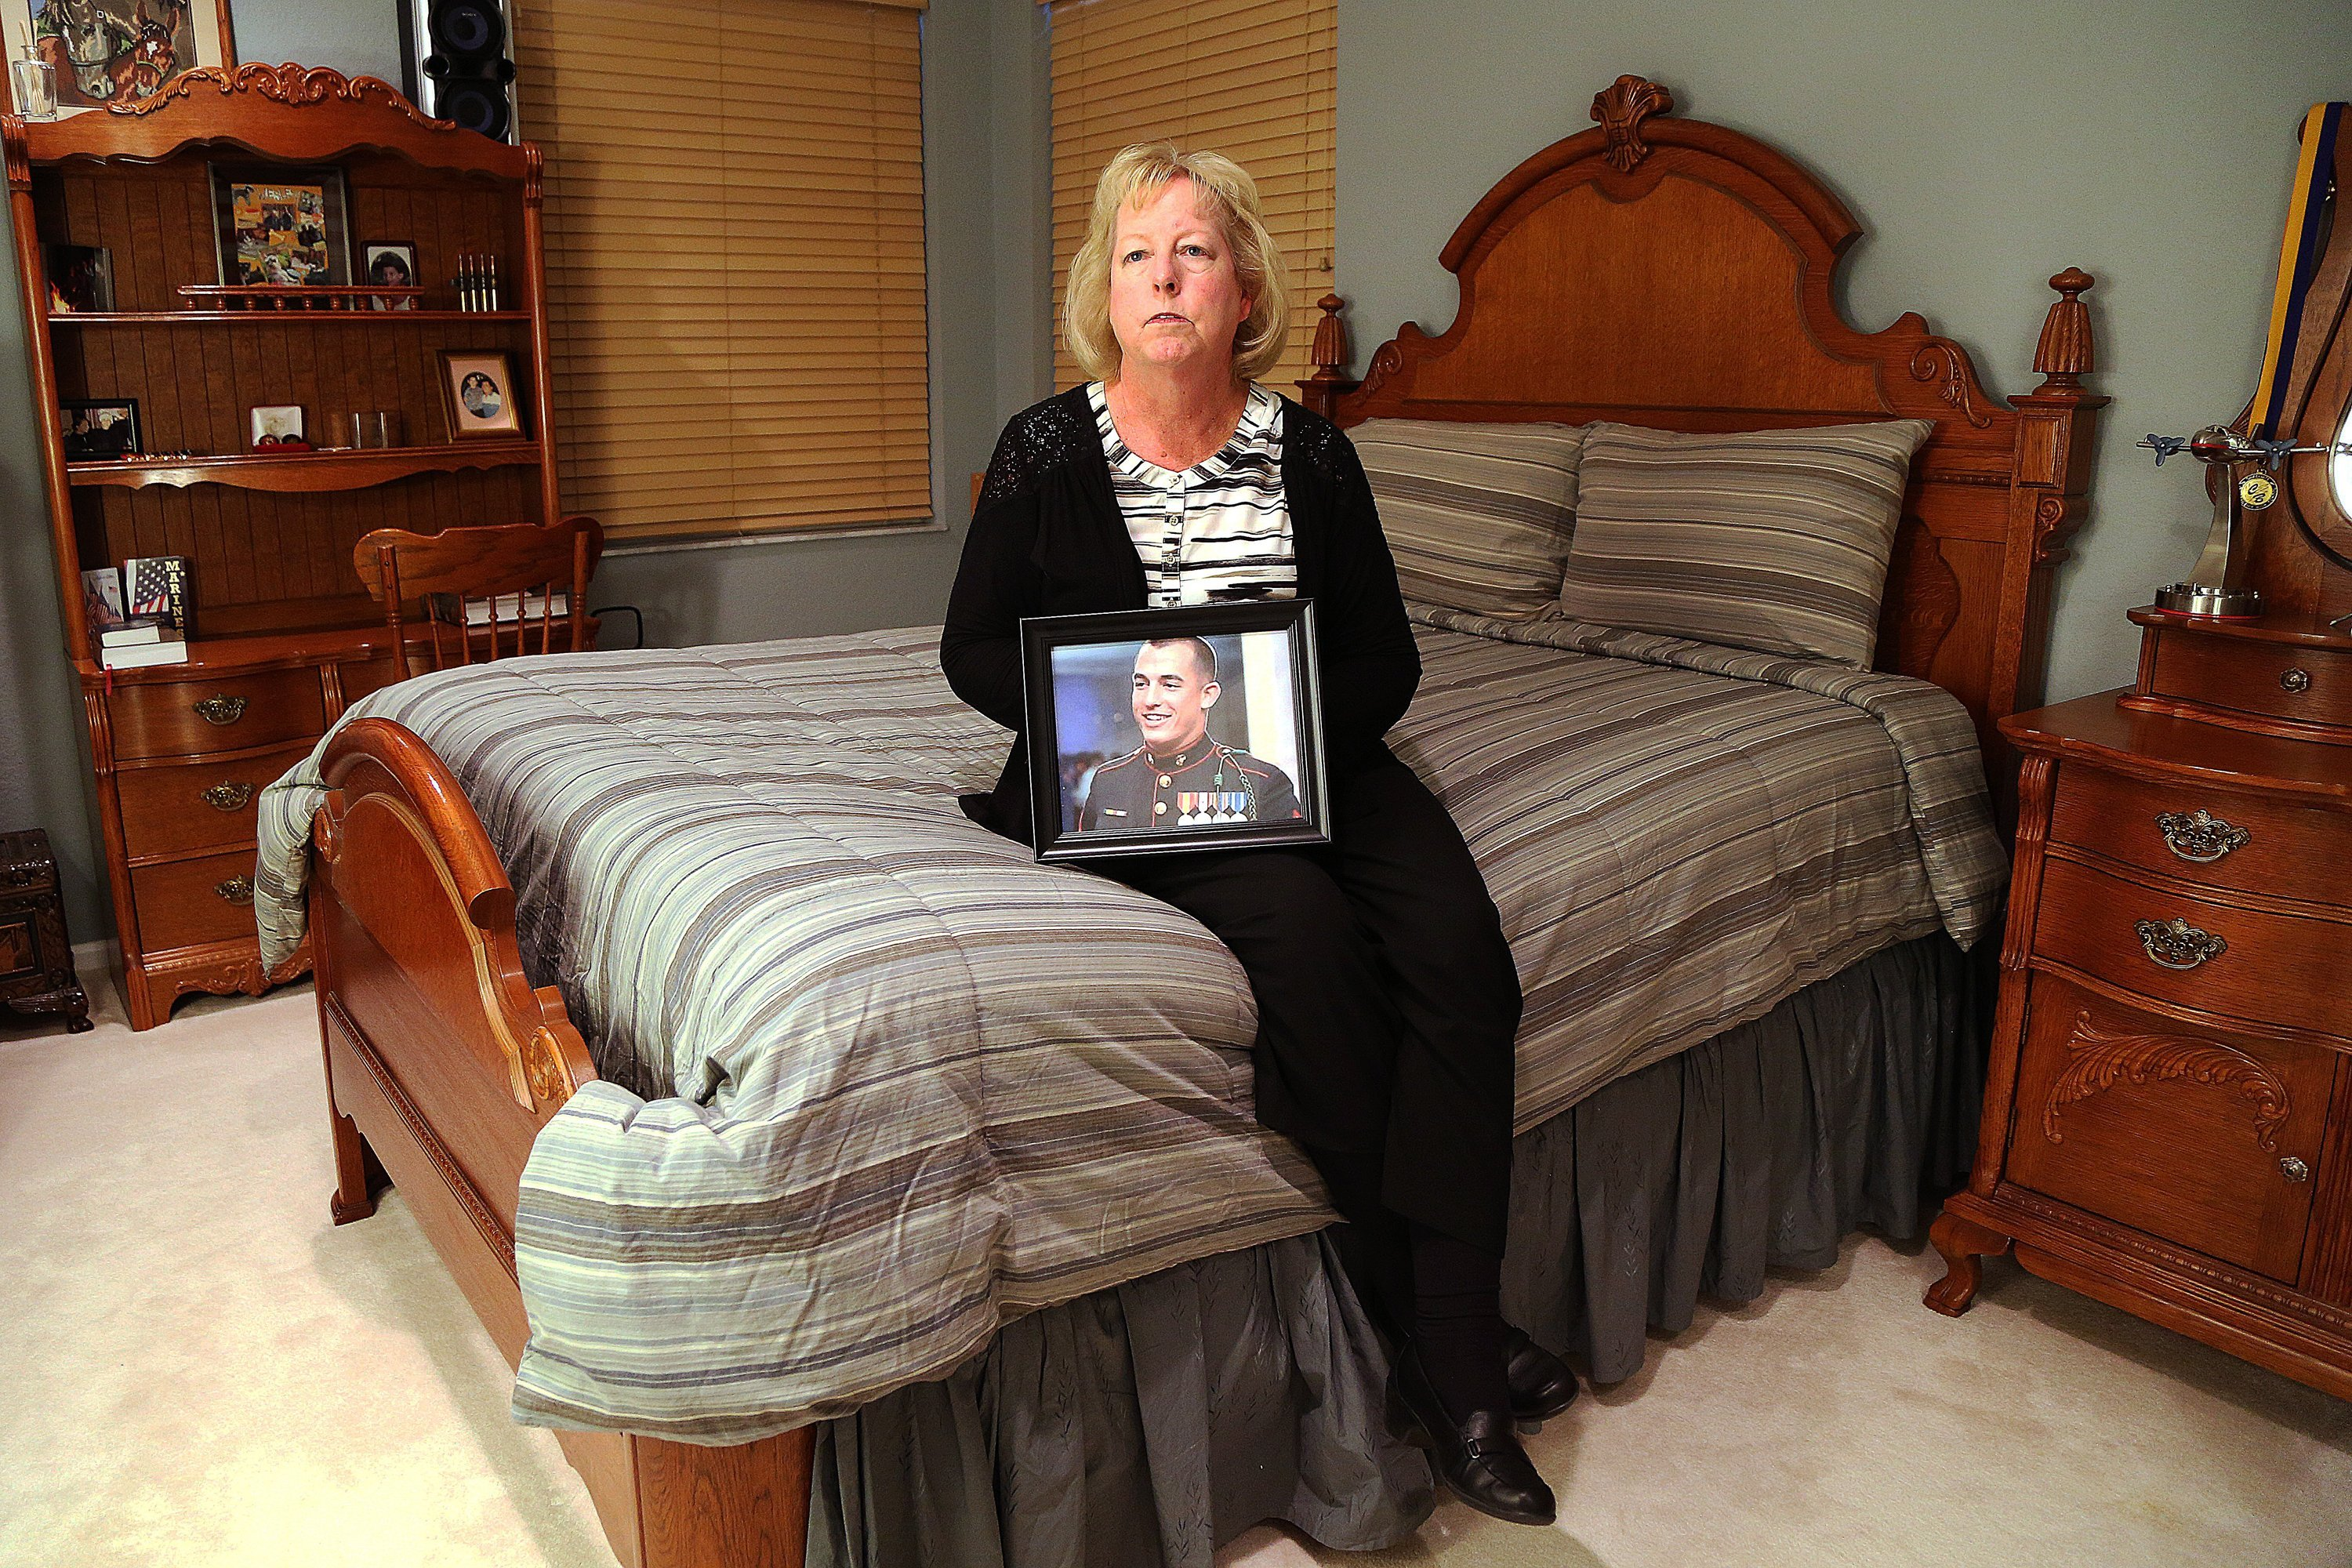 Jill Tahmooressi, mother of Marine Sgt. Andrew Tahmooressi, who was arrested in Mexico more than four months ago after he crossed the border in possession of guns and ammunition, at her Weston, Fla., home on August 7, 2014. (Carline Jean/Sun Sentinel/MCT)